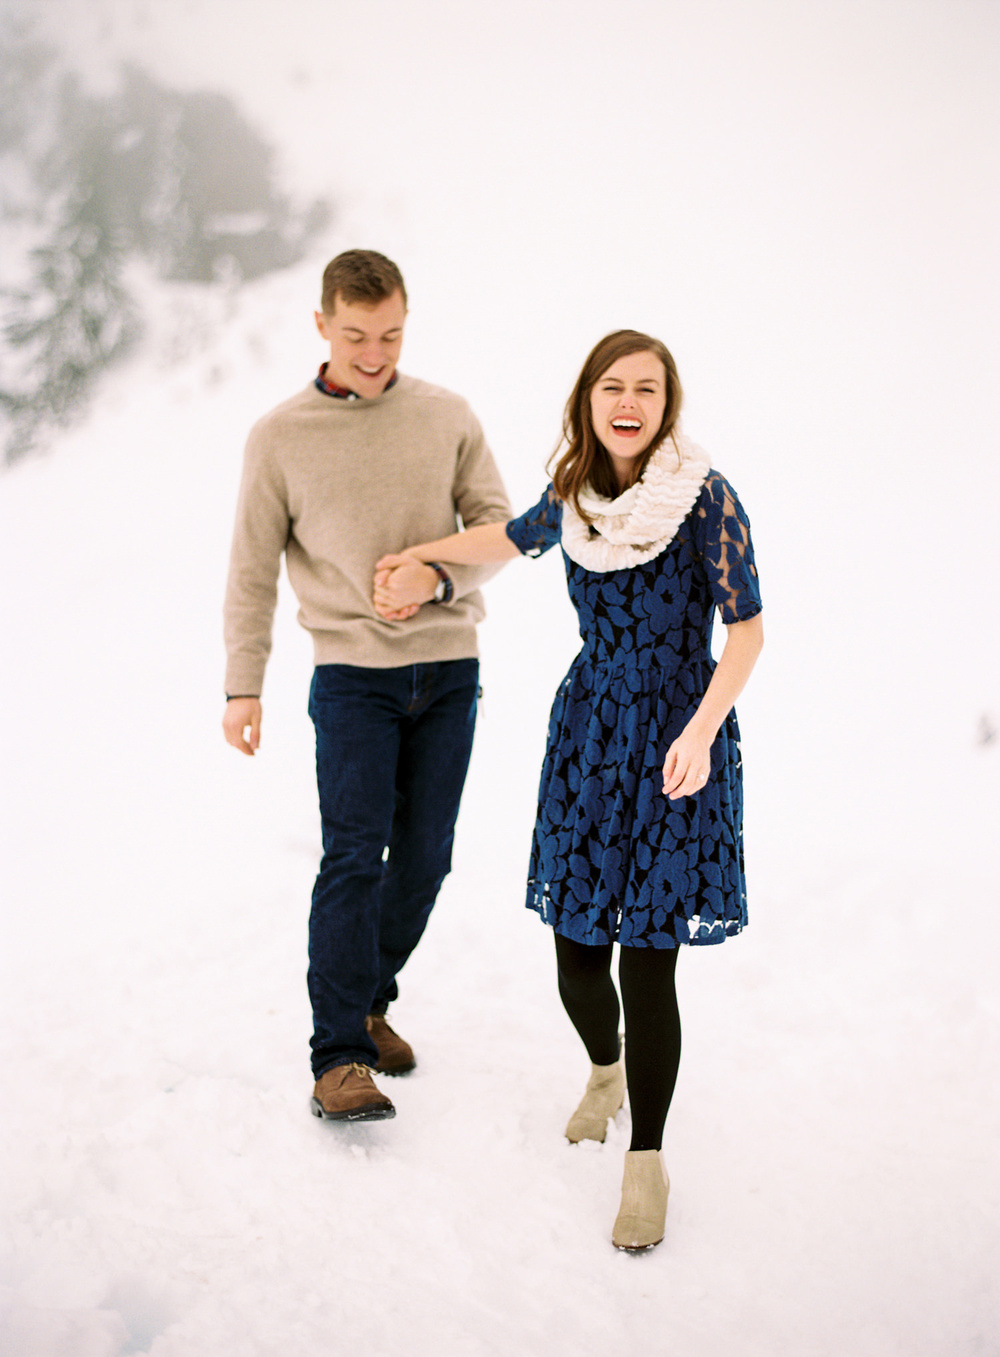 031-snoqualmie-mountain-engagement-session-seattle-film-wedding-photographer-ryan-flynn.jpg